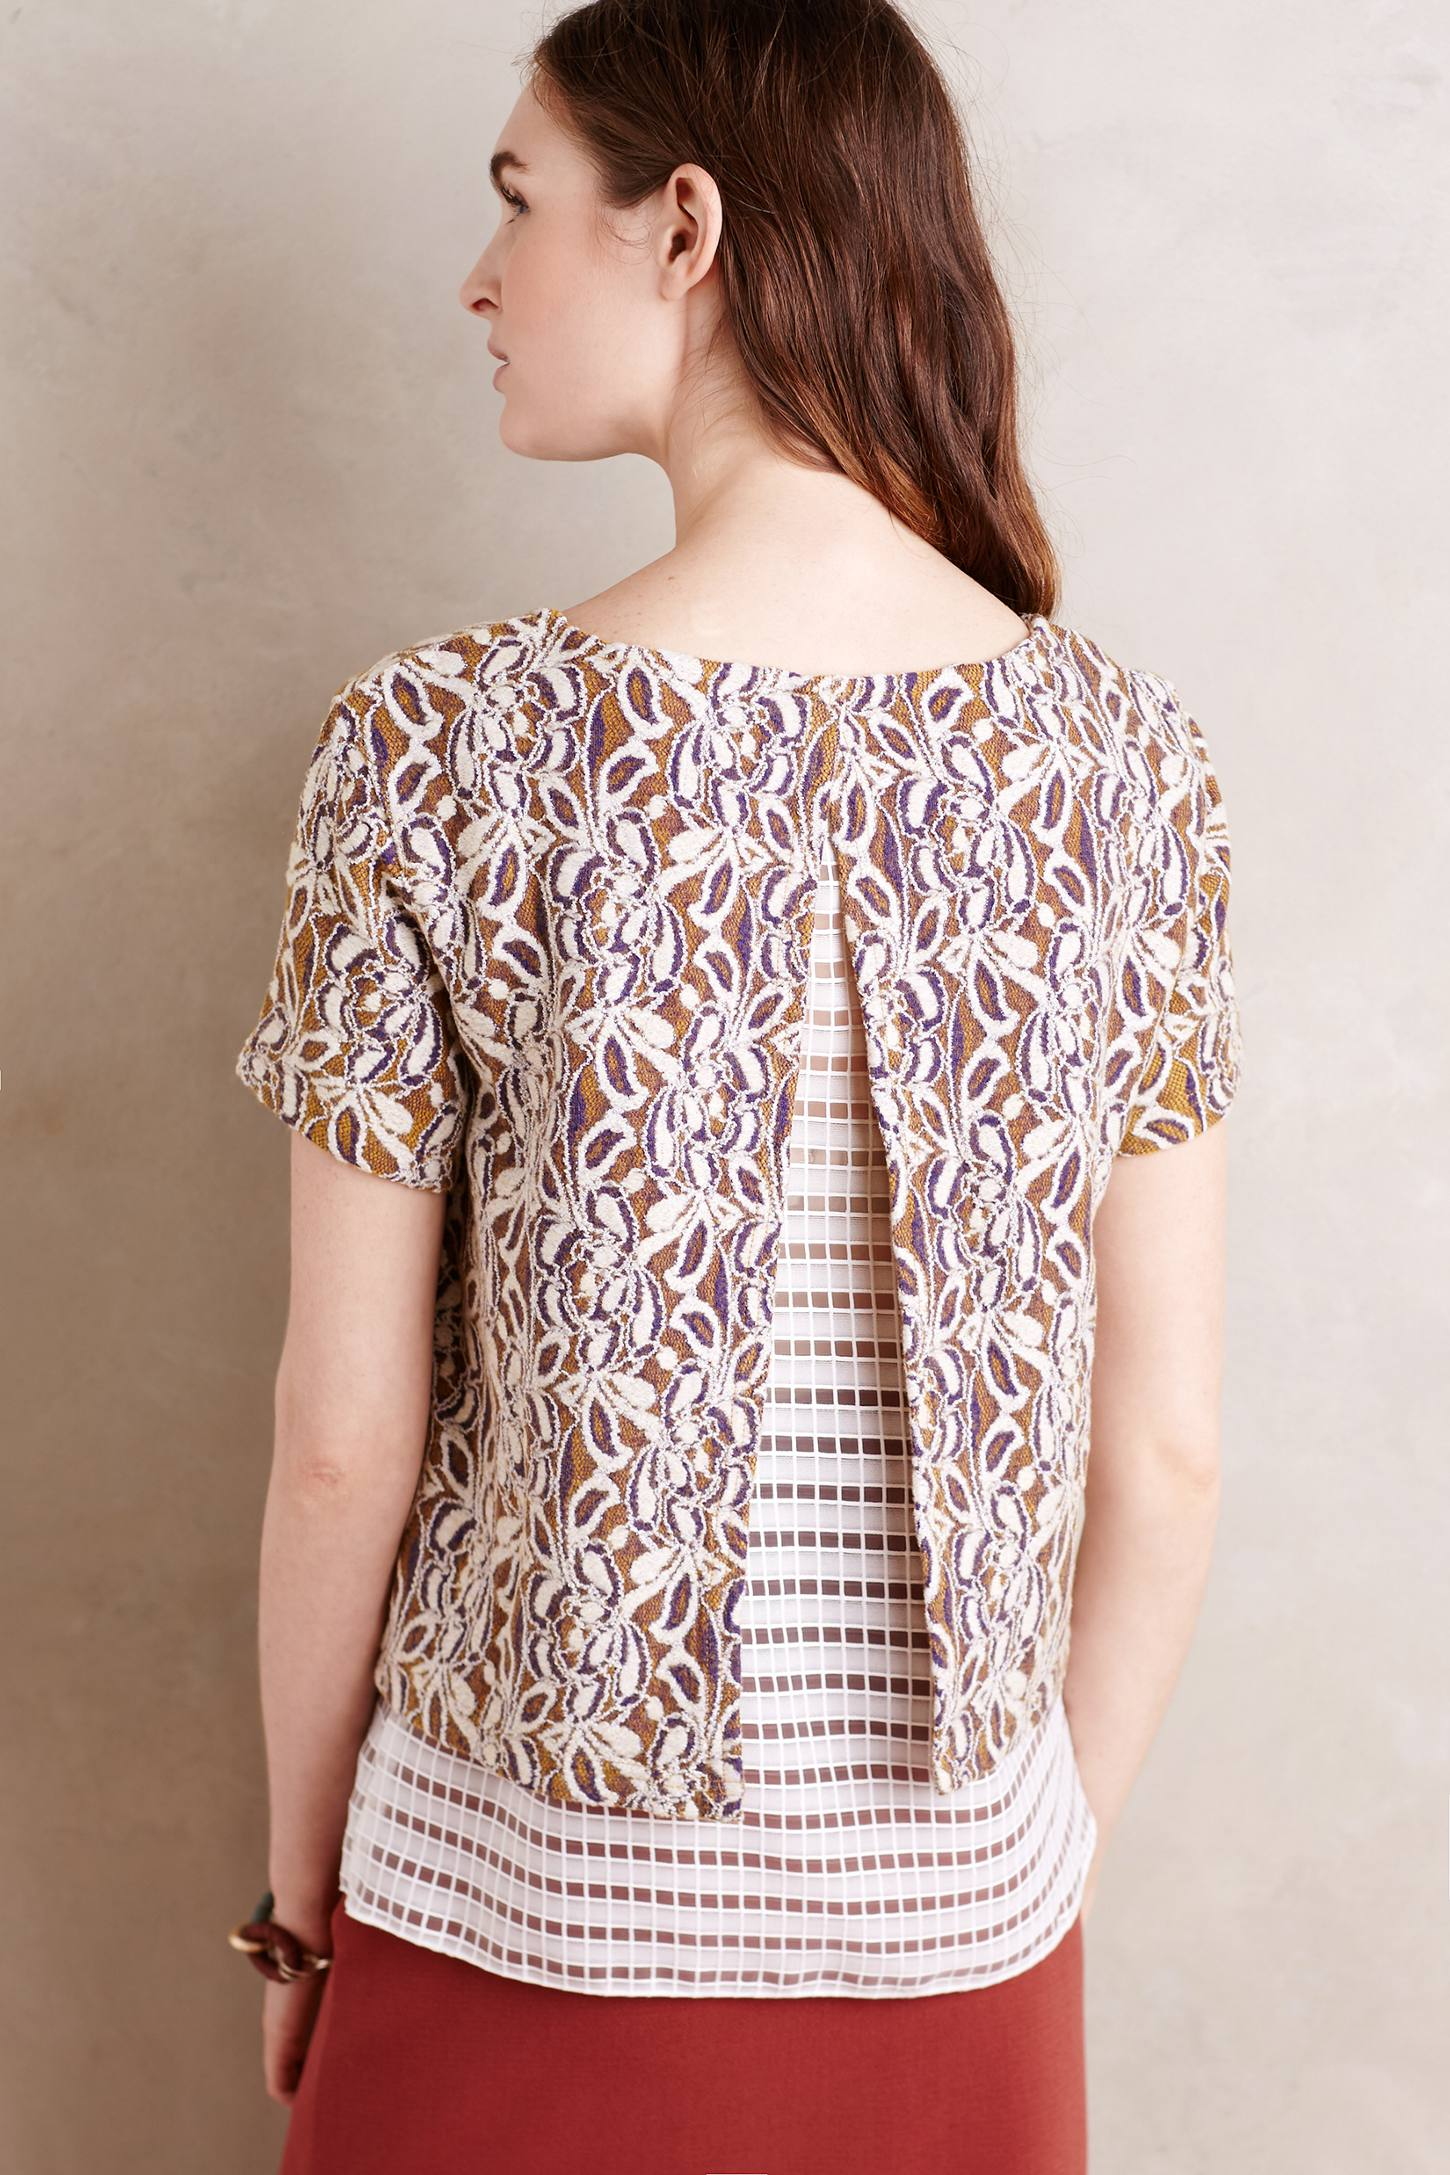 Loggia Layered Top